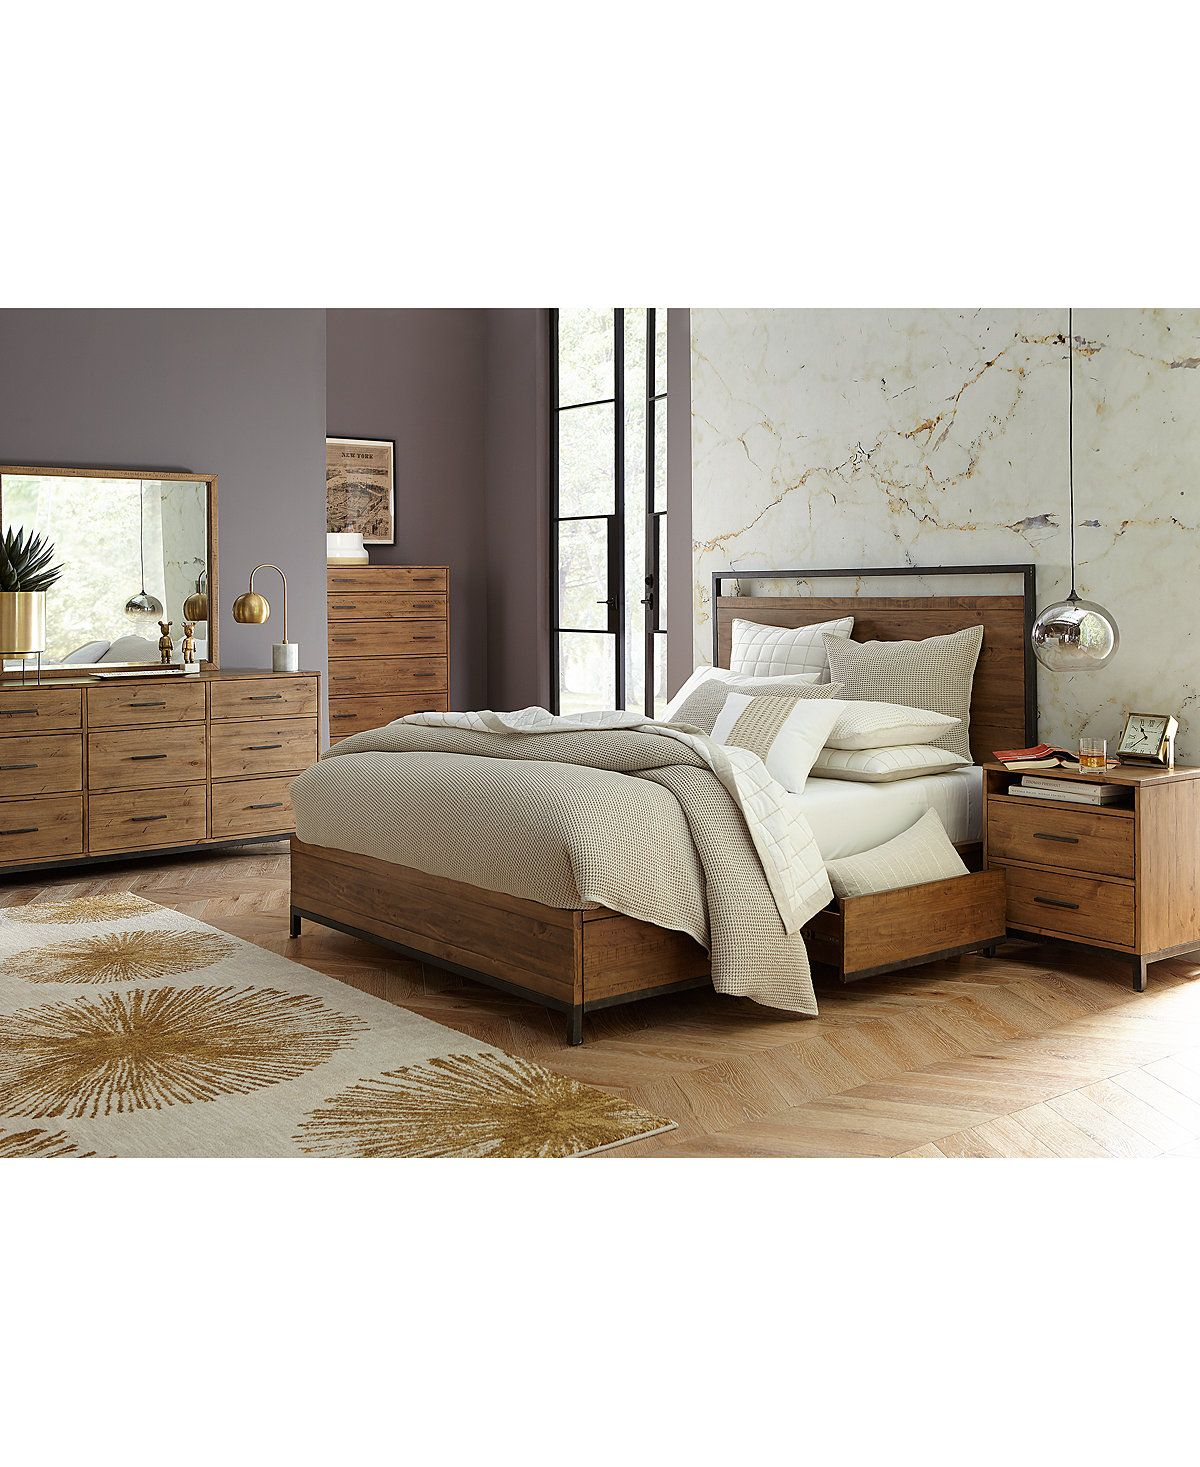 Gatlin Storage King Bed  Only at Macy s   Bedroom Collections   Furniture    Macy s. Gatlin Storage King Platform Bed  Created for Macy s   King beds